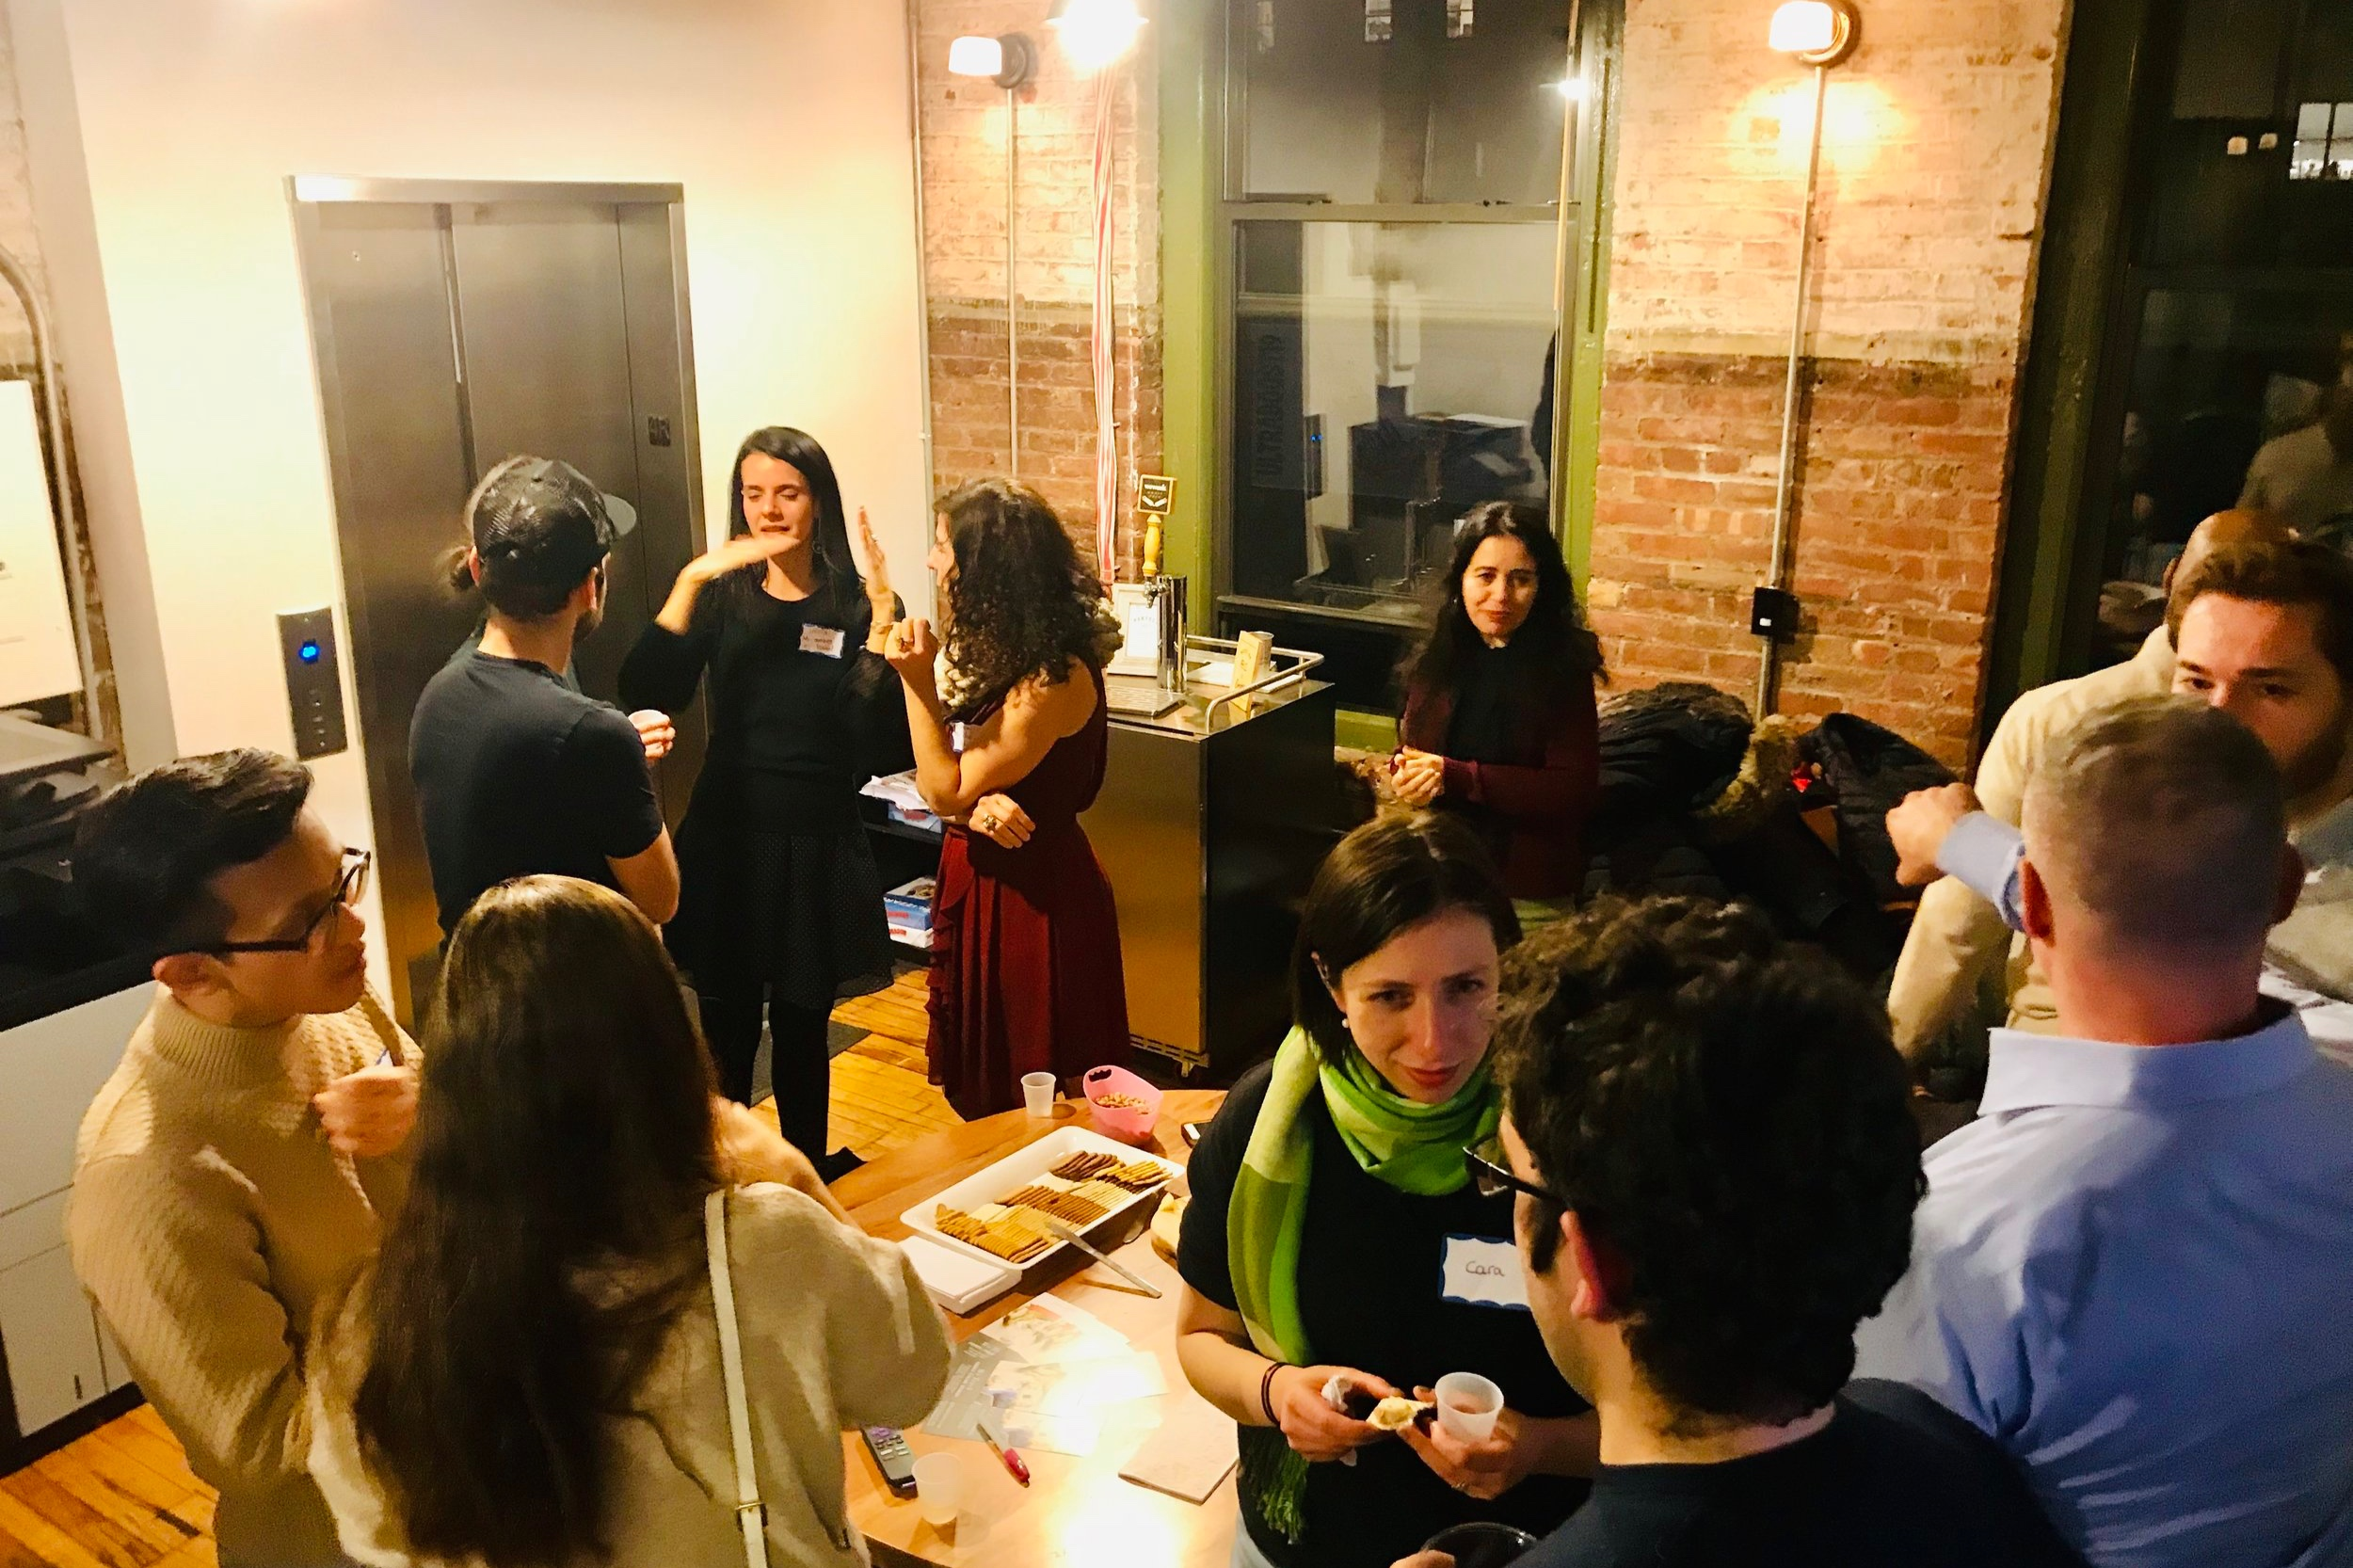 Find Us At WeWork - We are nestled inside one of the leading innovative networking communities in the world, WeWork! Inside each classroom, you will find a cozy space that can be accompanied by a warm cup of tea!